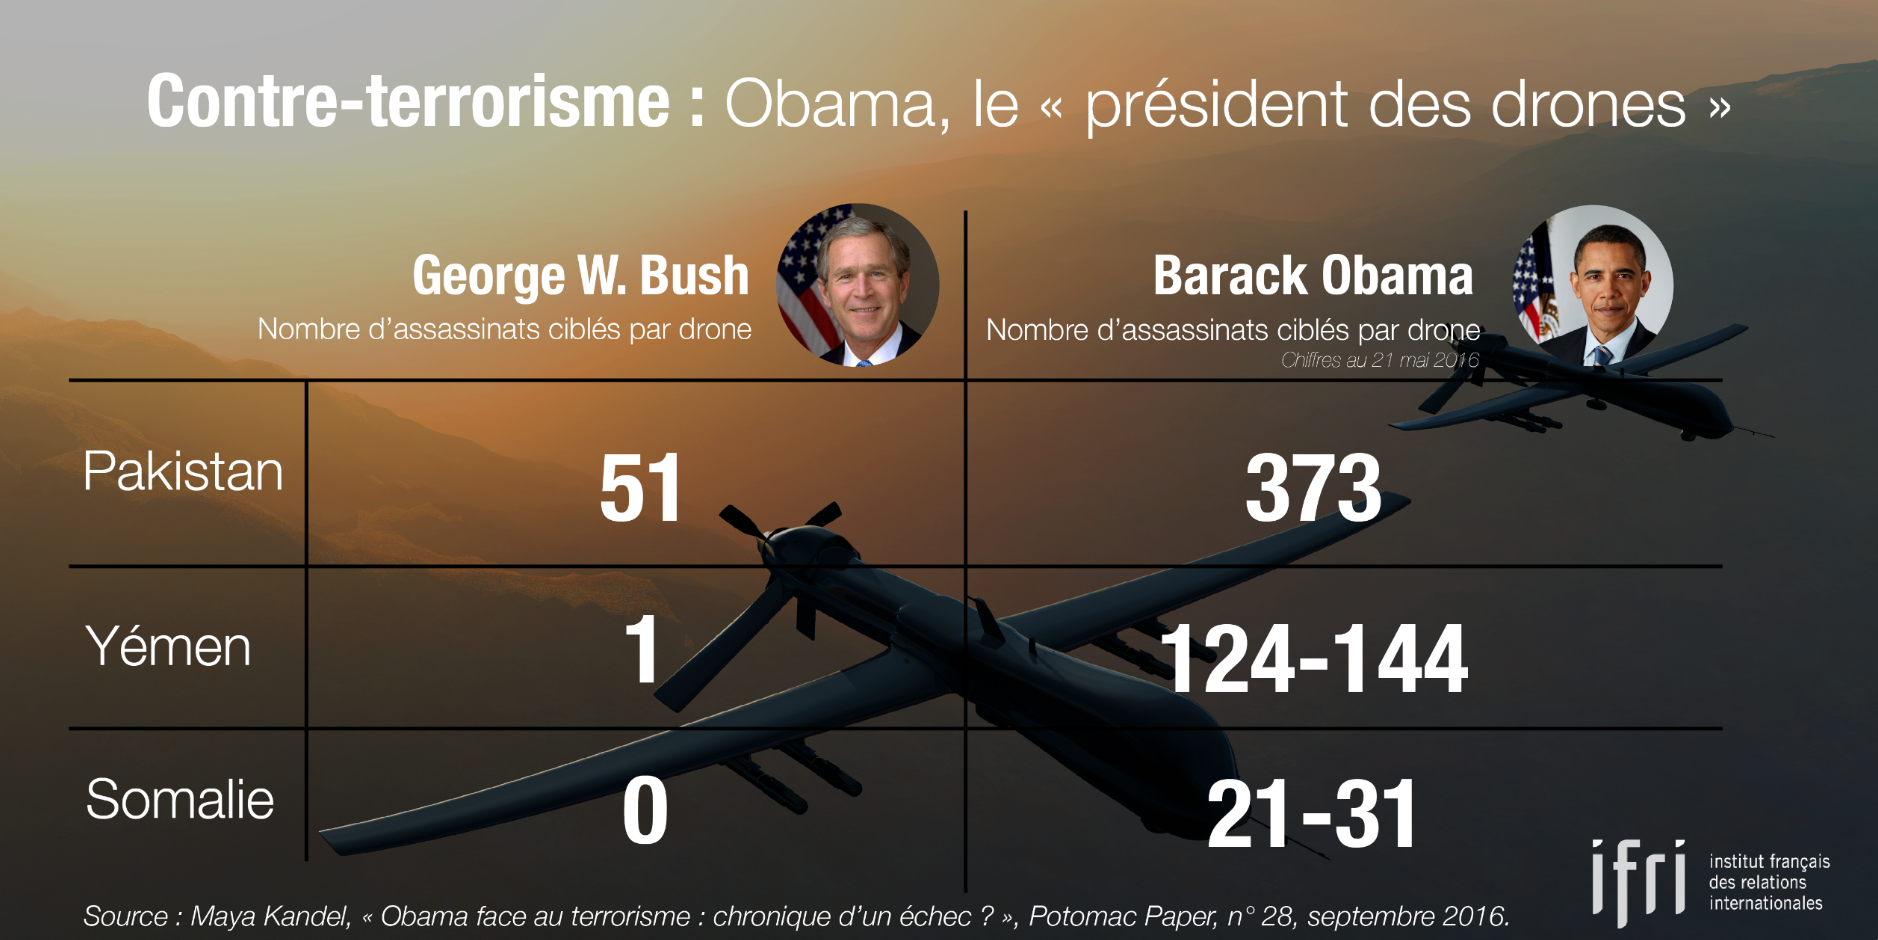 light_obama_bush_drone.png